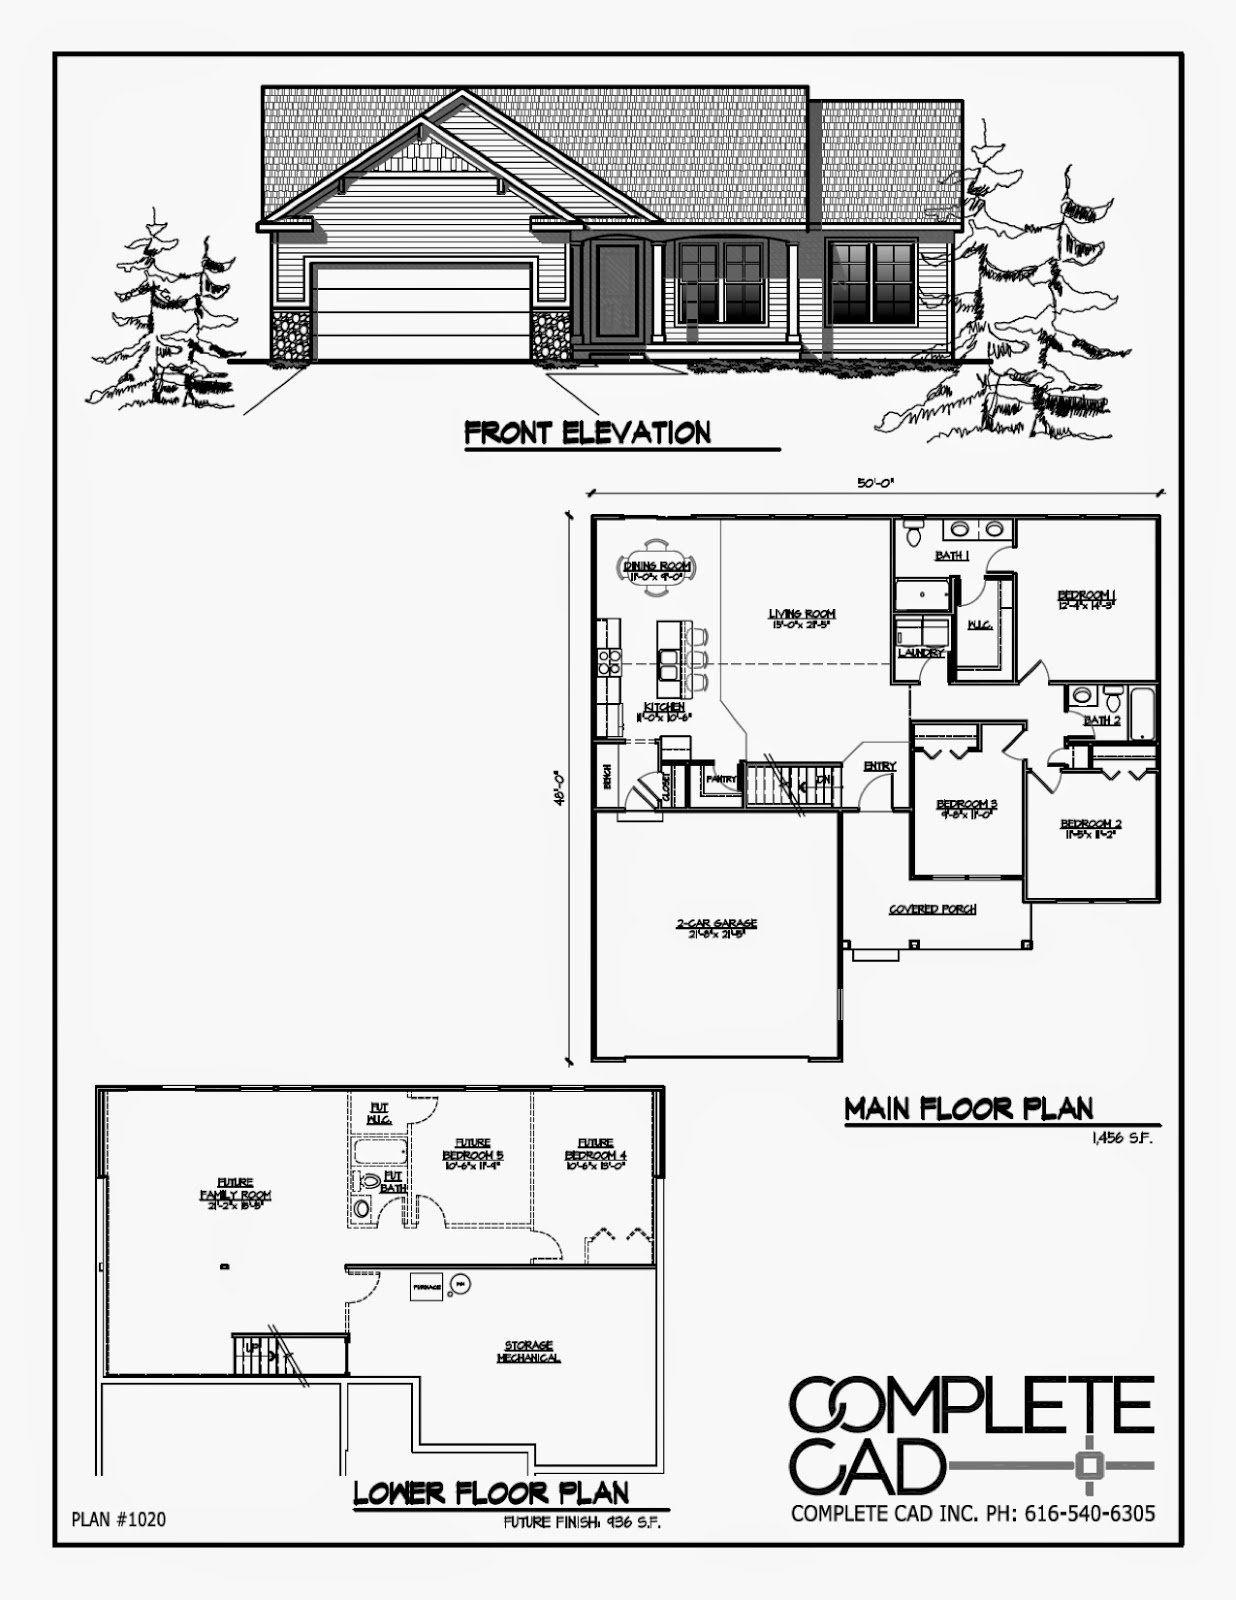 Complete House Plan 3 Bedroom Wheelchair Accessible House Plans Universal